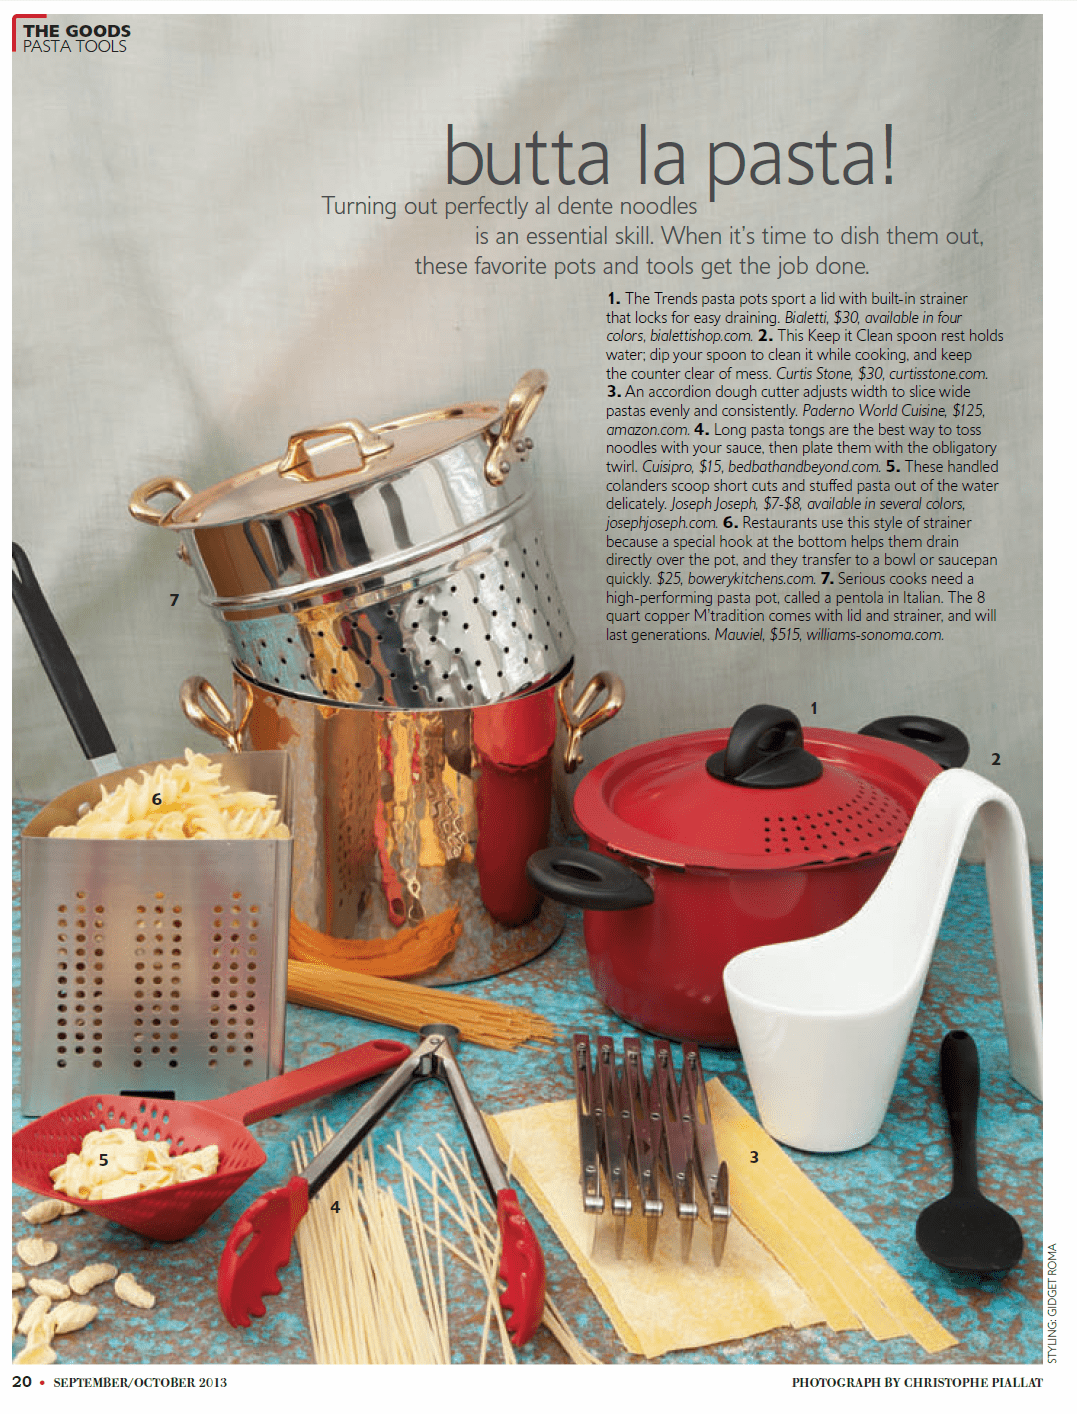 As seen in La Cucina Italiana ~ Sept/Oct 2013 Issue